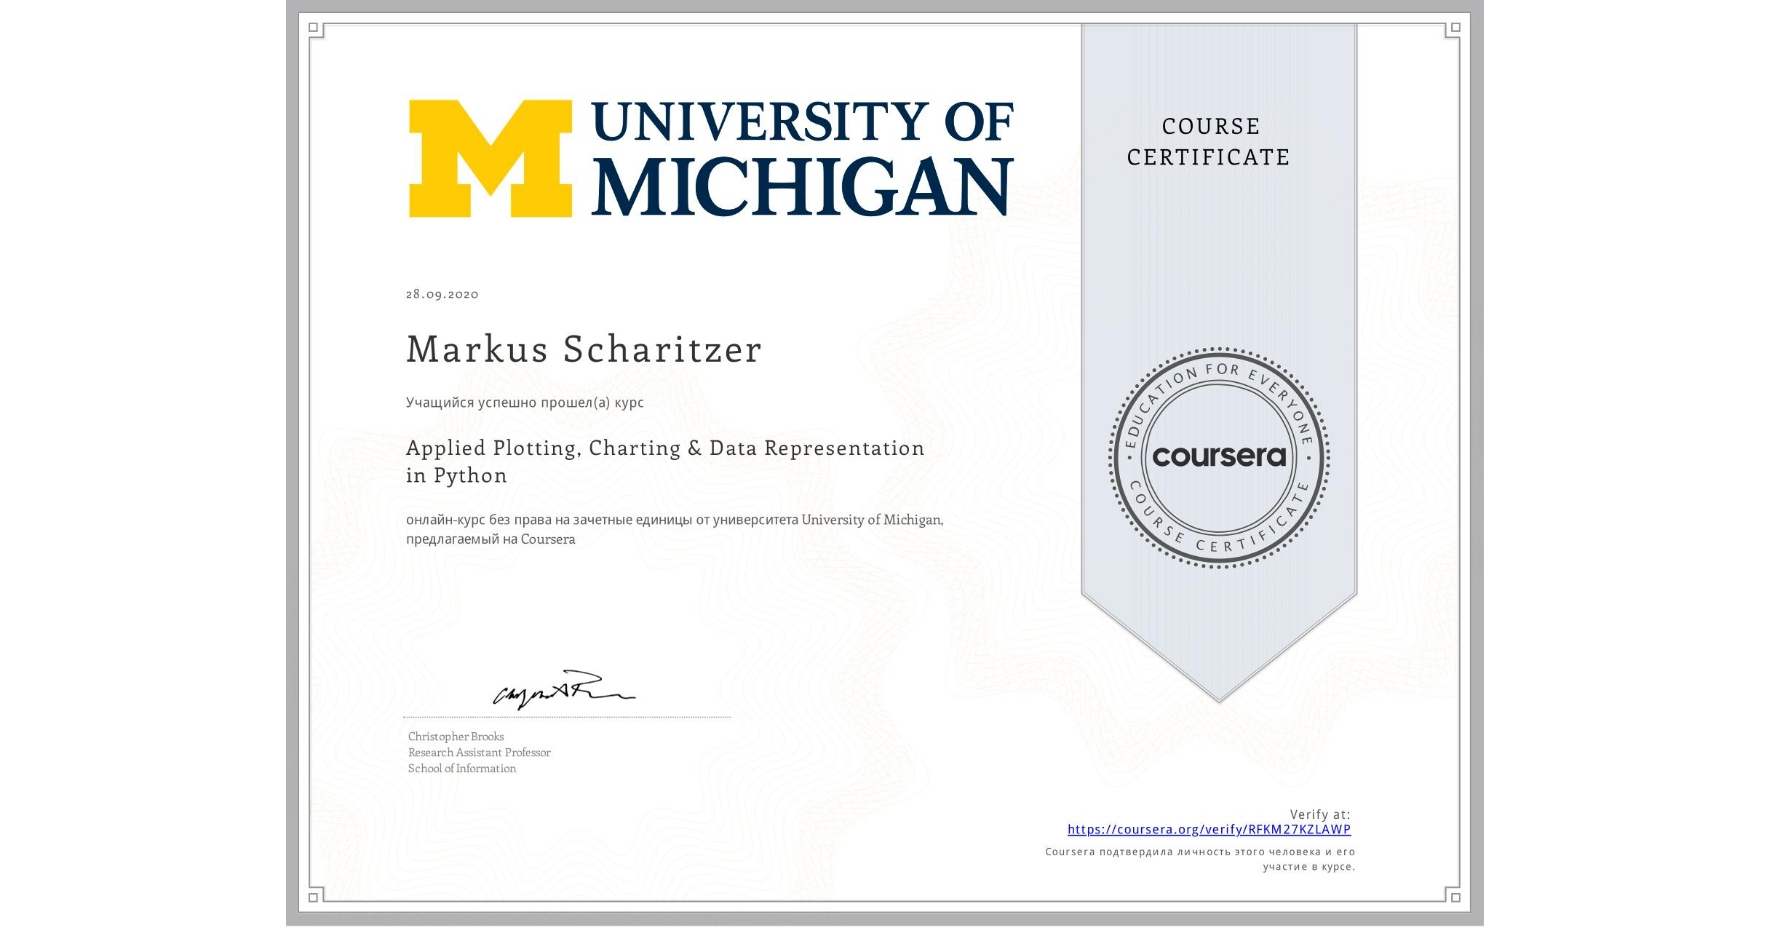 View certificate for Markus Scharitzer, Applied Plotting, Charting & Data Representation in Python, an online non-credit course authorized by University of Michigan and offered through Coursera